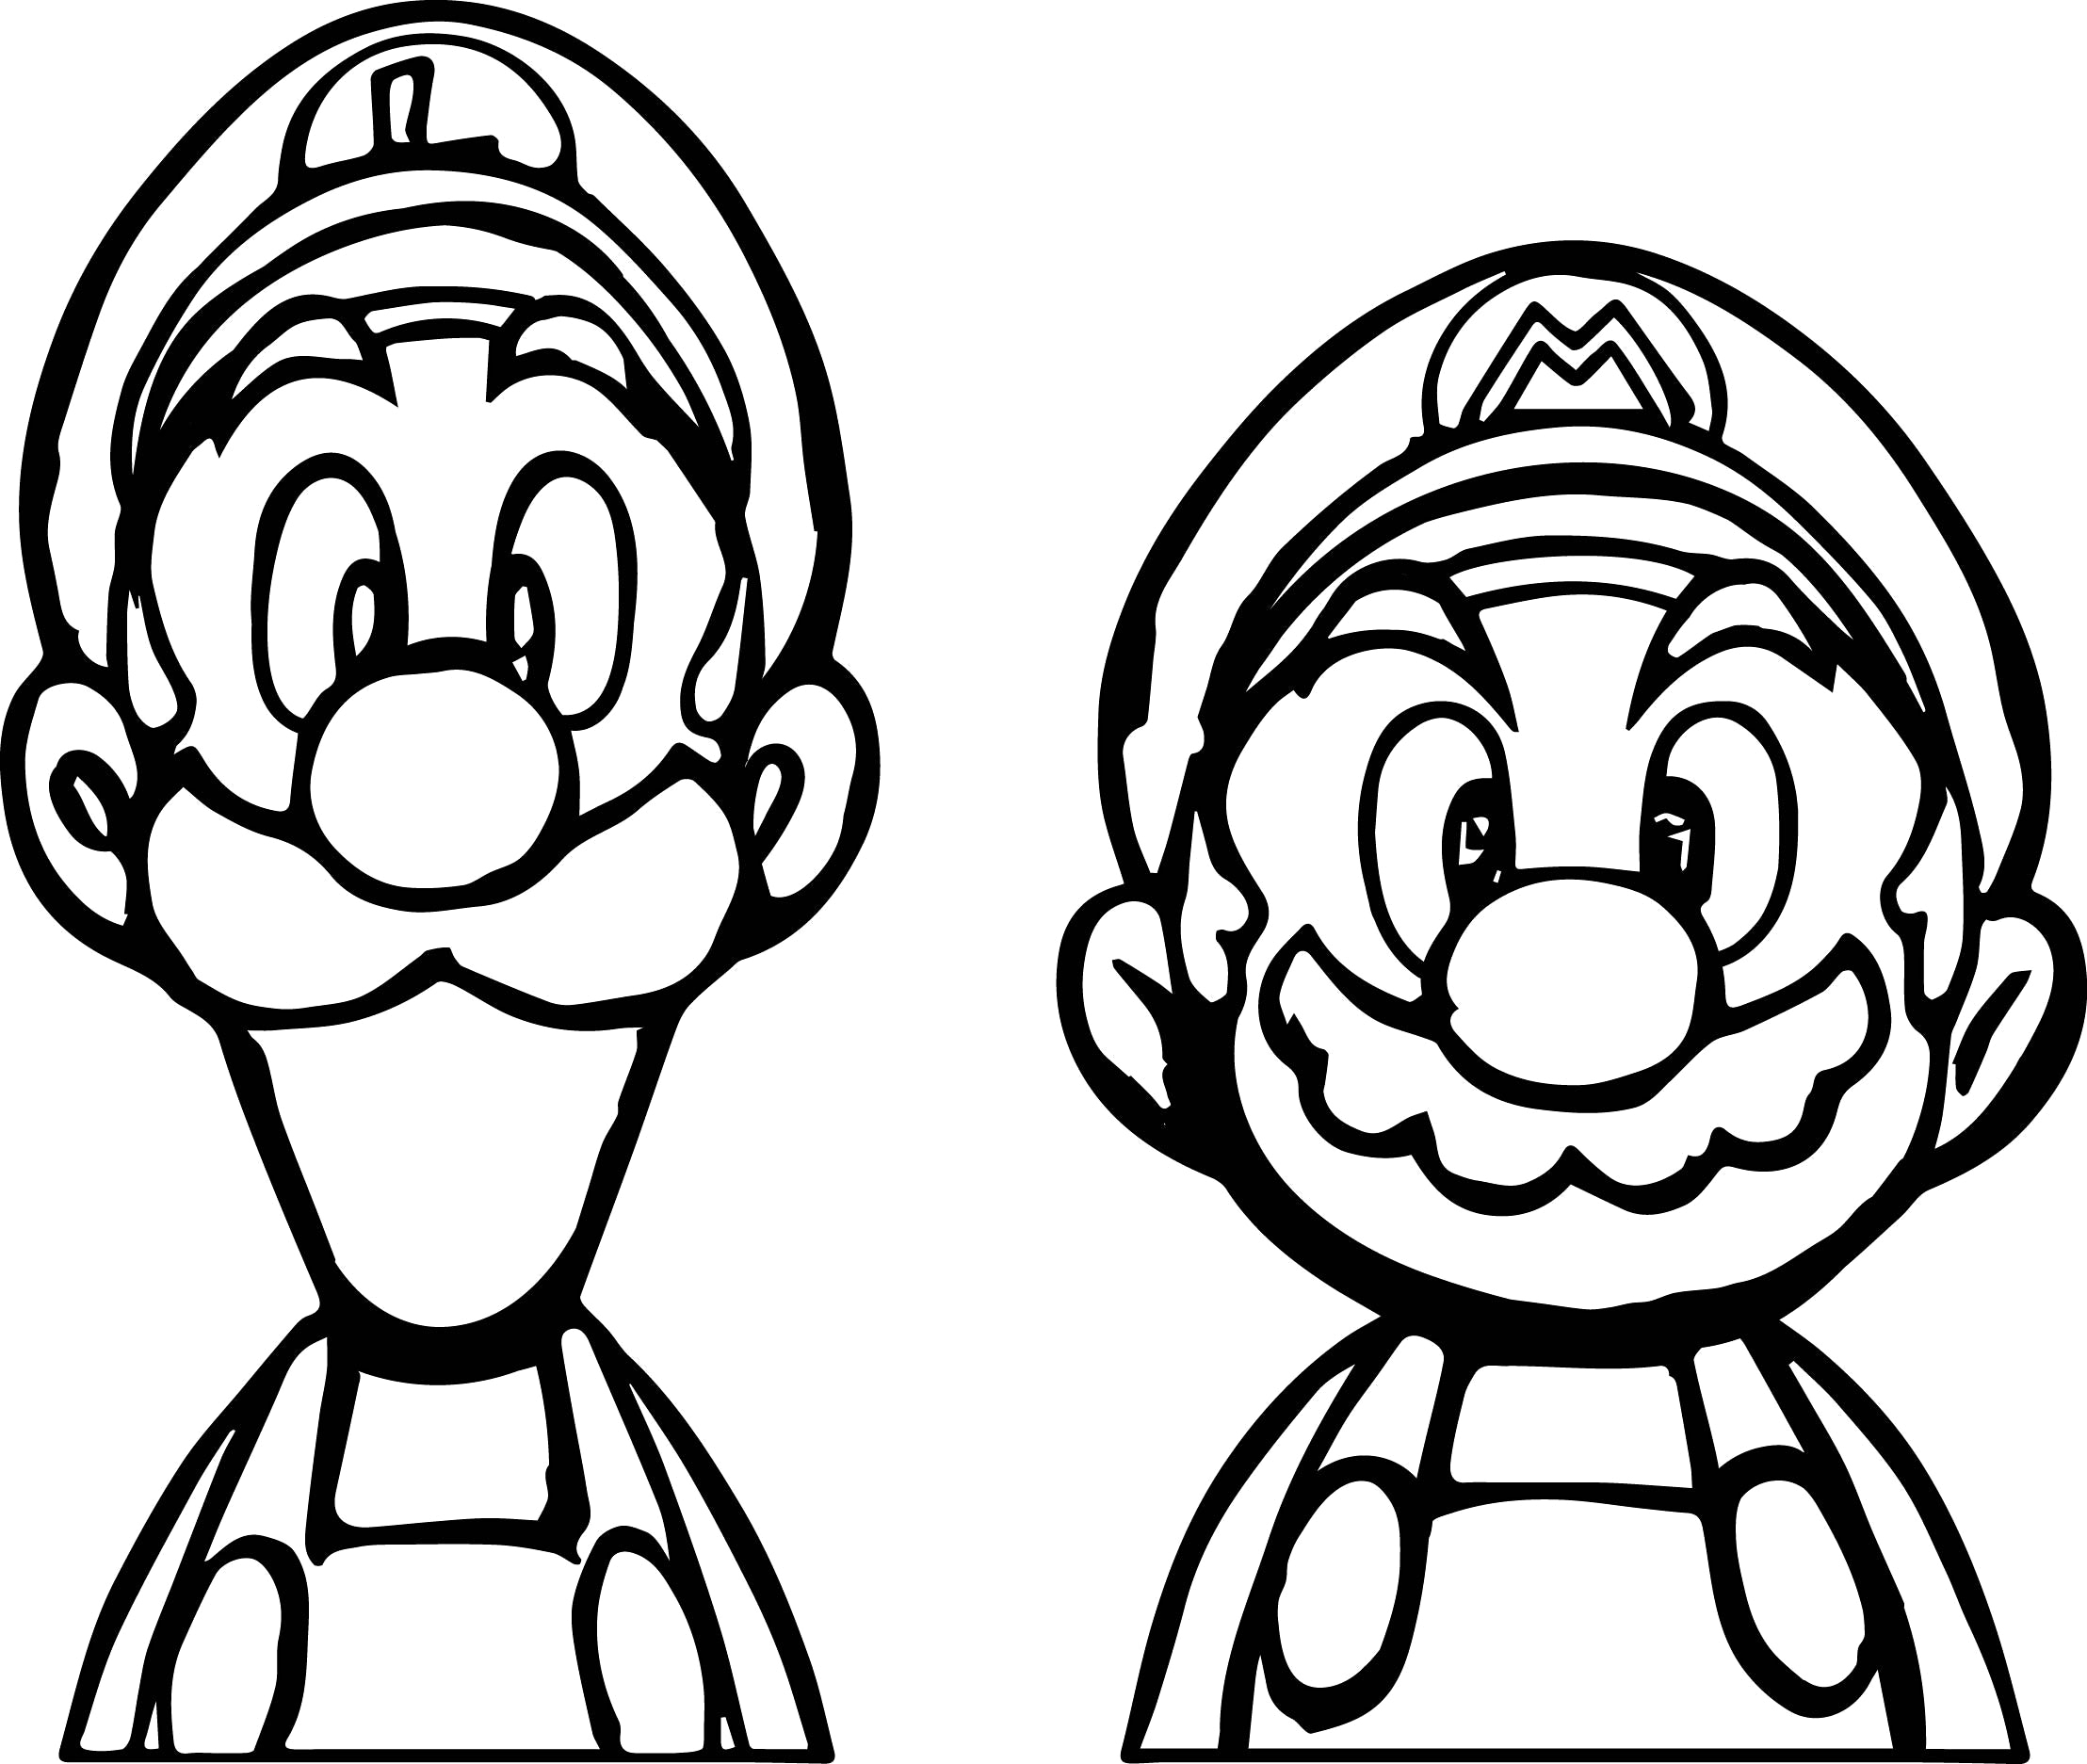 Super Mario Brothers toad Coloring Pages Mushroom Free Printable Gallery Of Super Mario Coloring Pages Bonnieleepanda Gallery